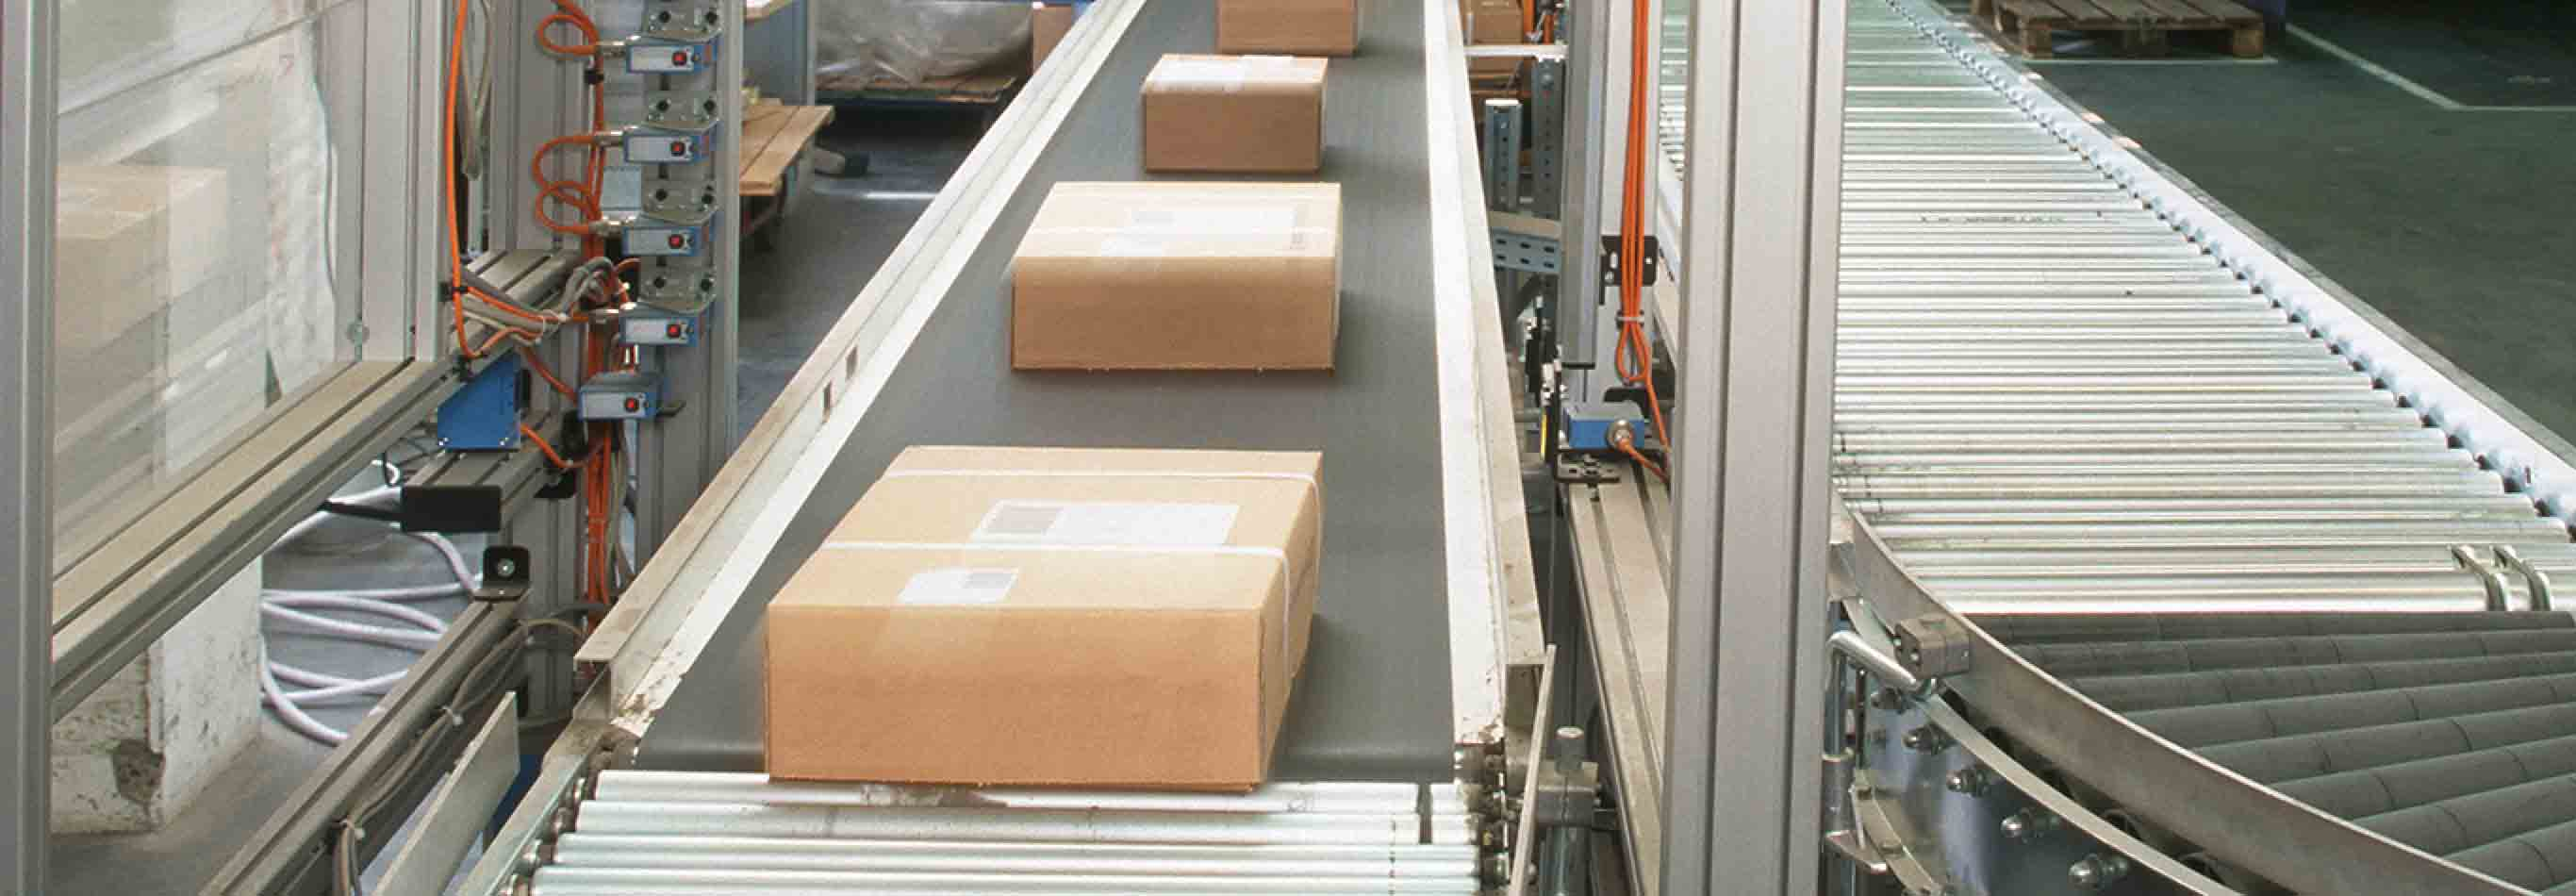 Image of packages moving on conveyor belt.